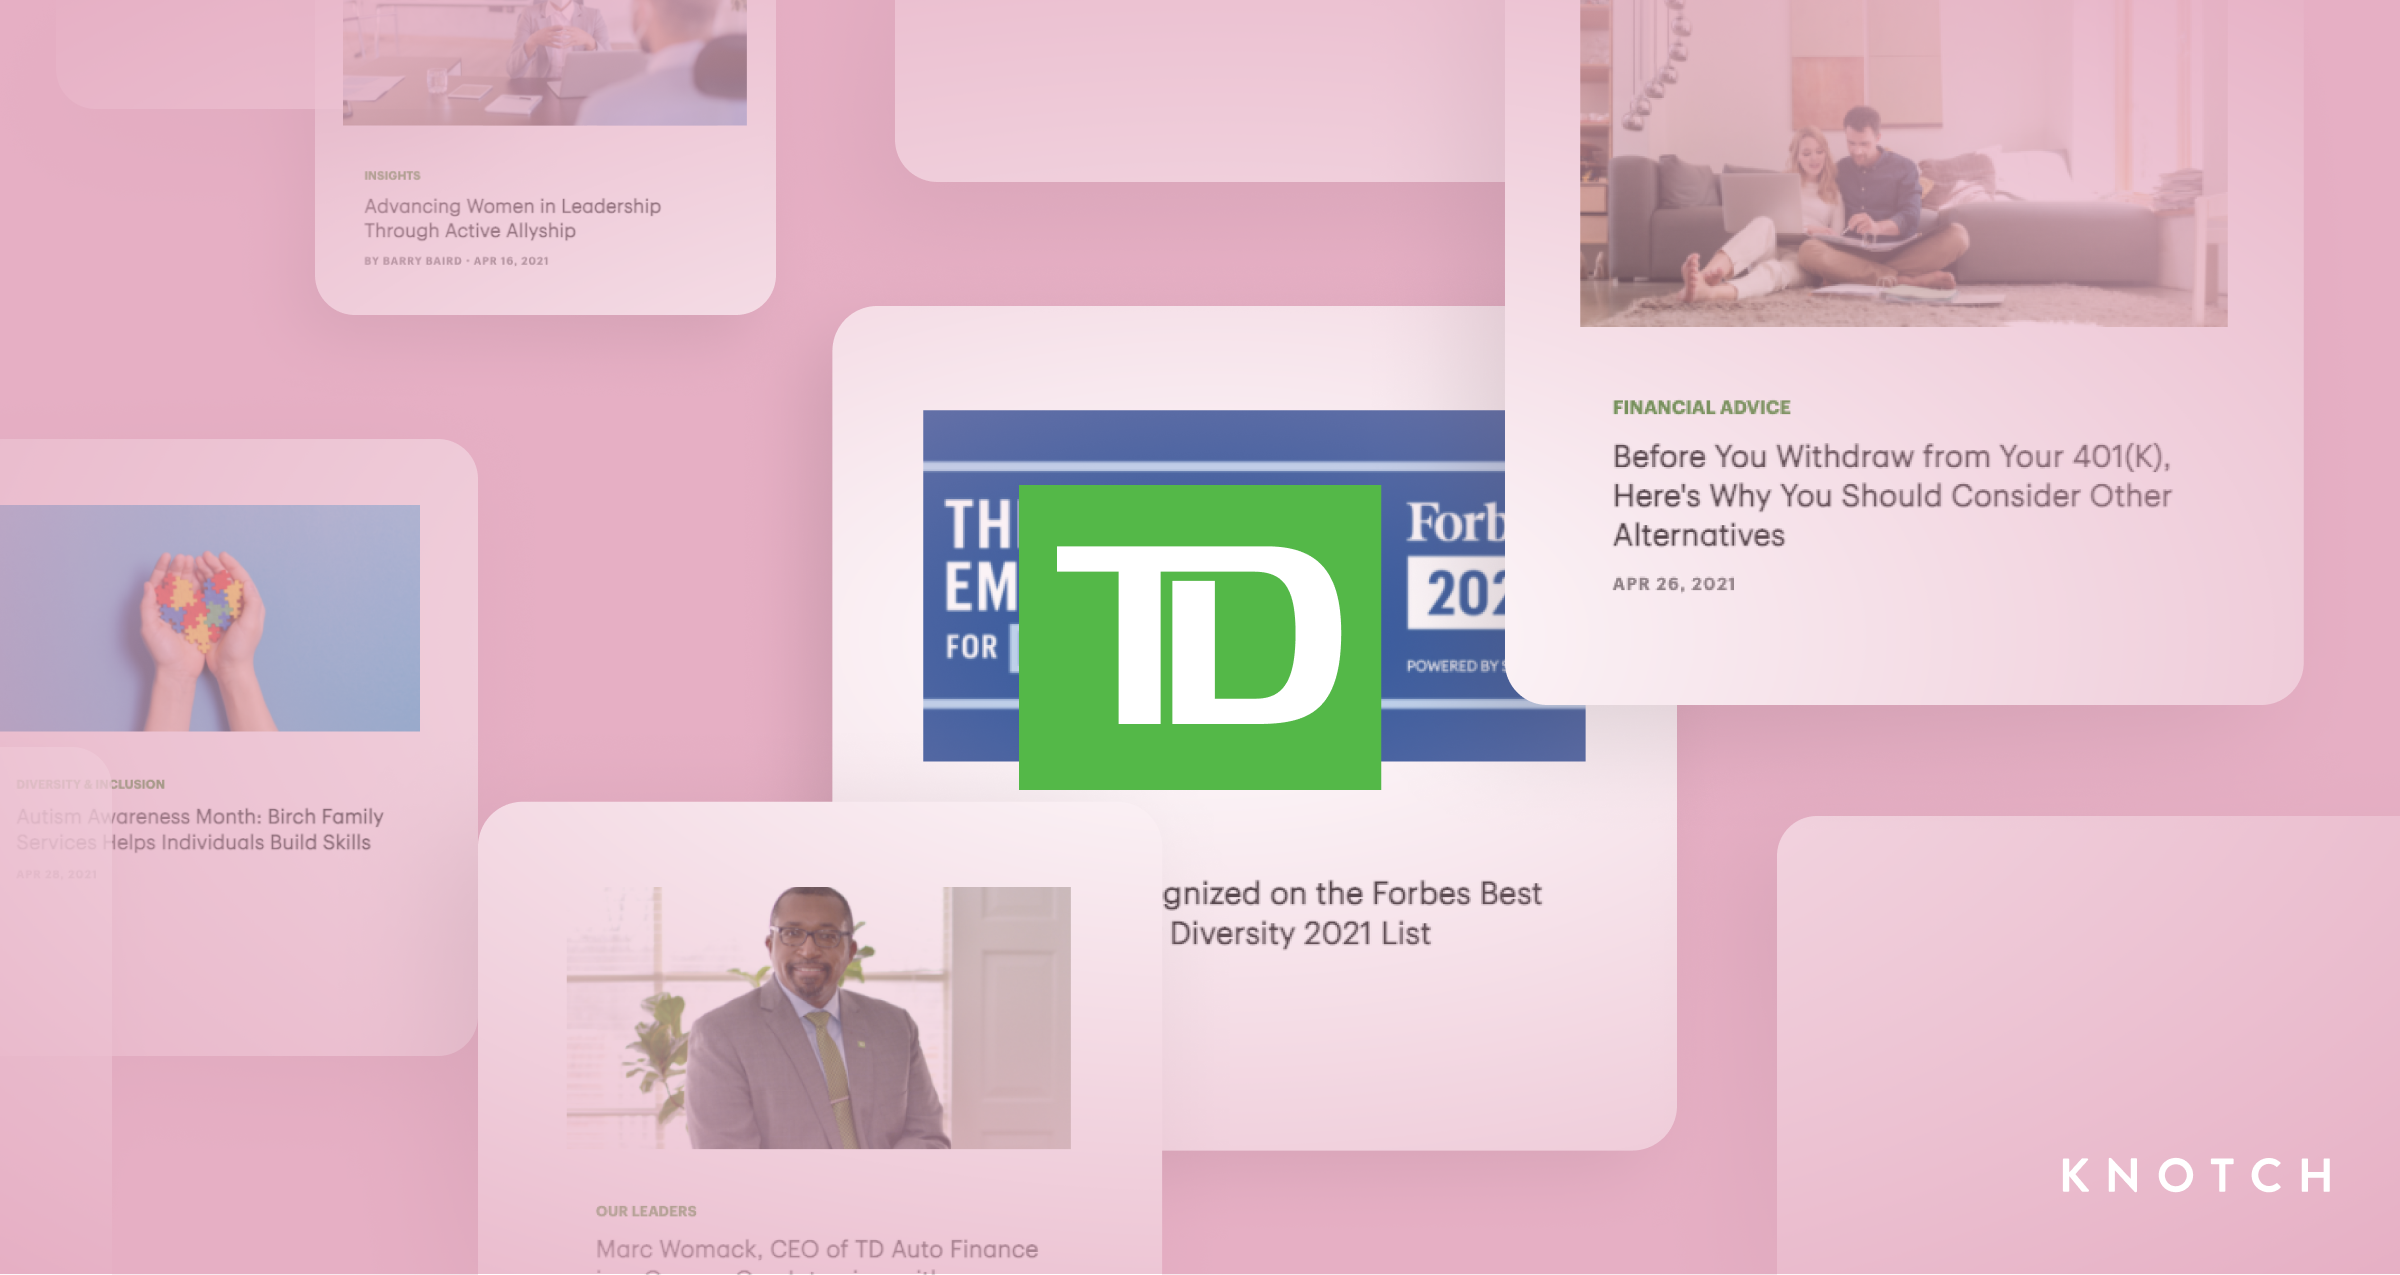 TD Bank Leads The Way: A Content Hub Fueled by Analytics